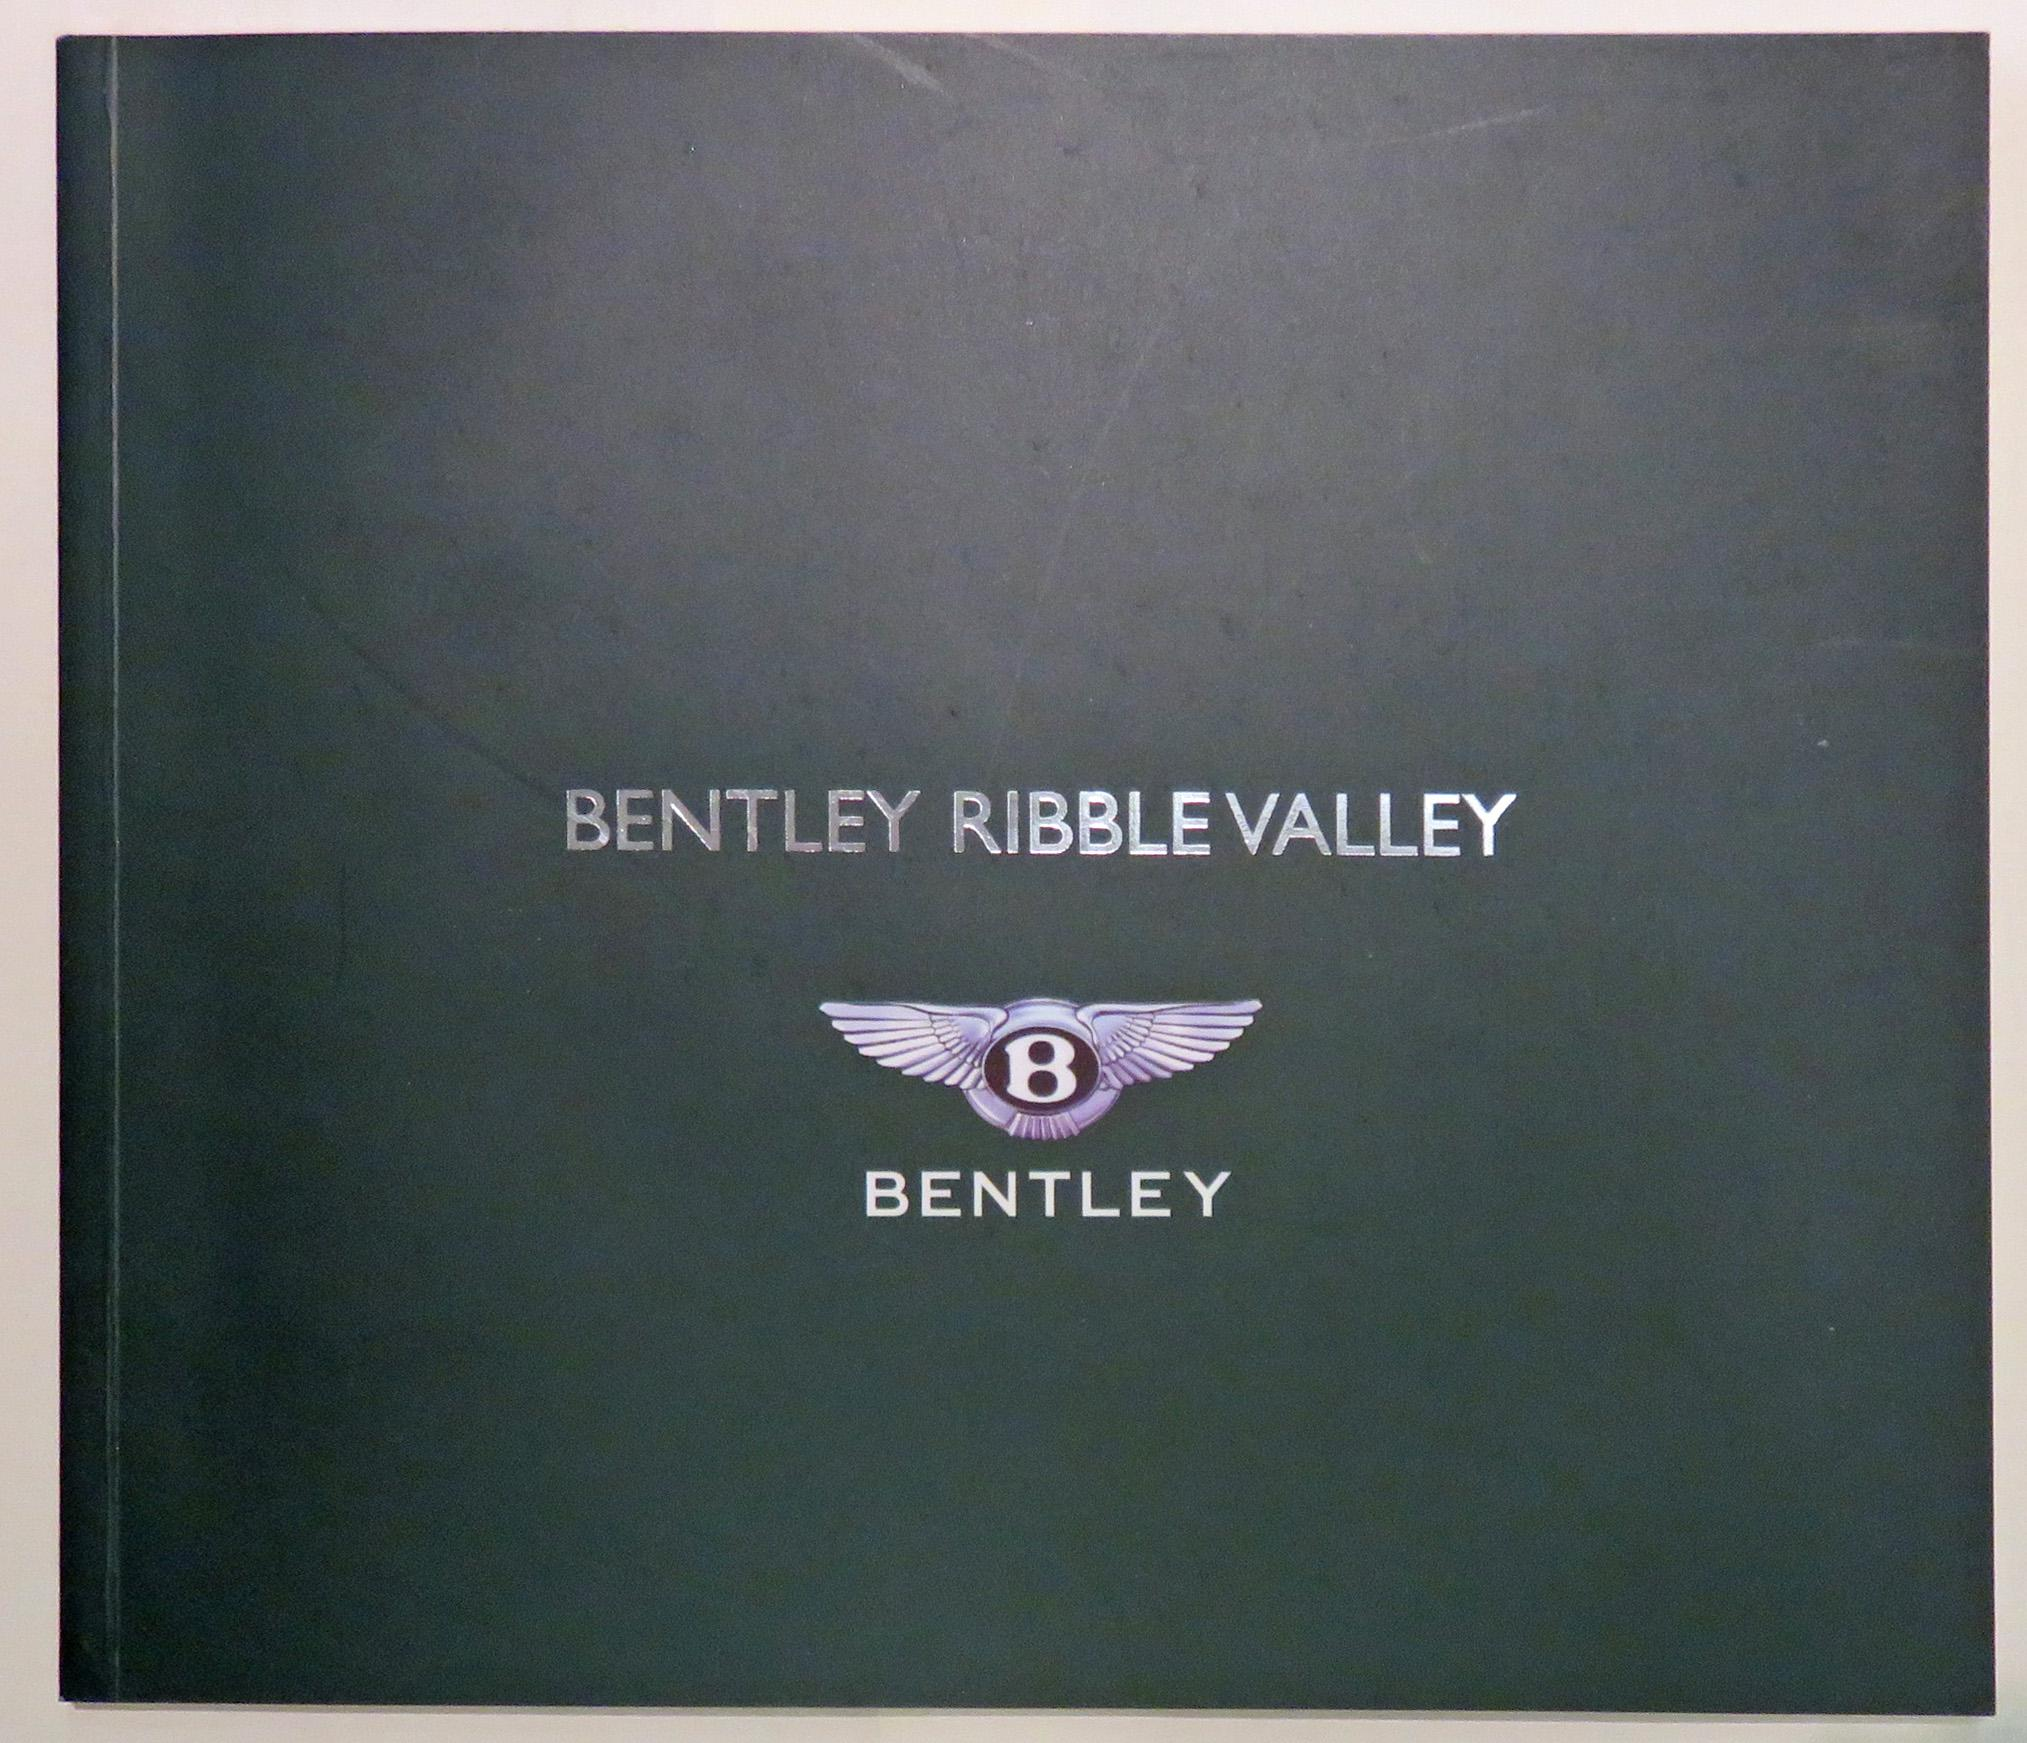 Bentley Ribble Valley